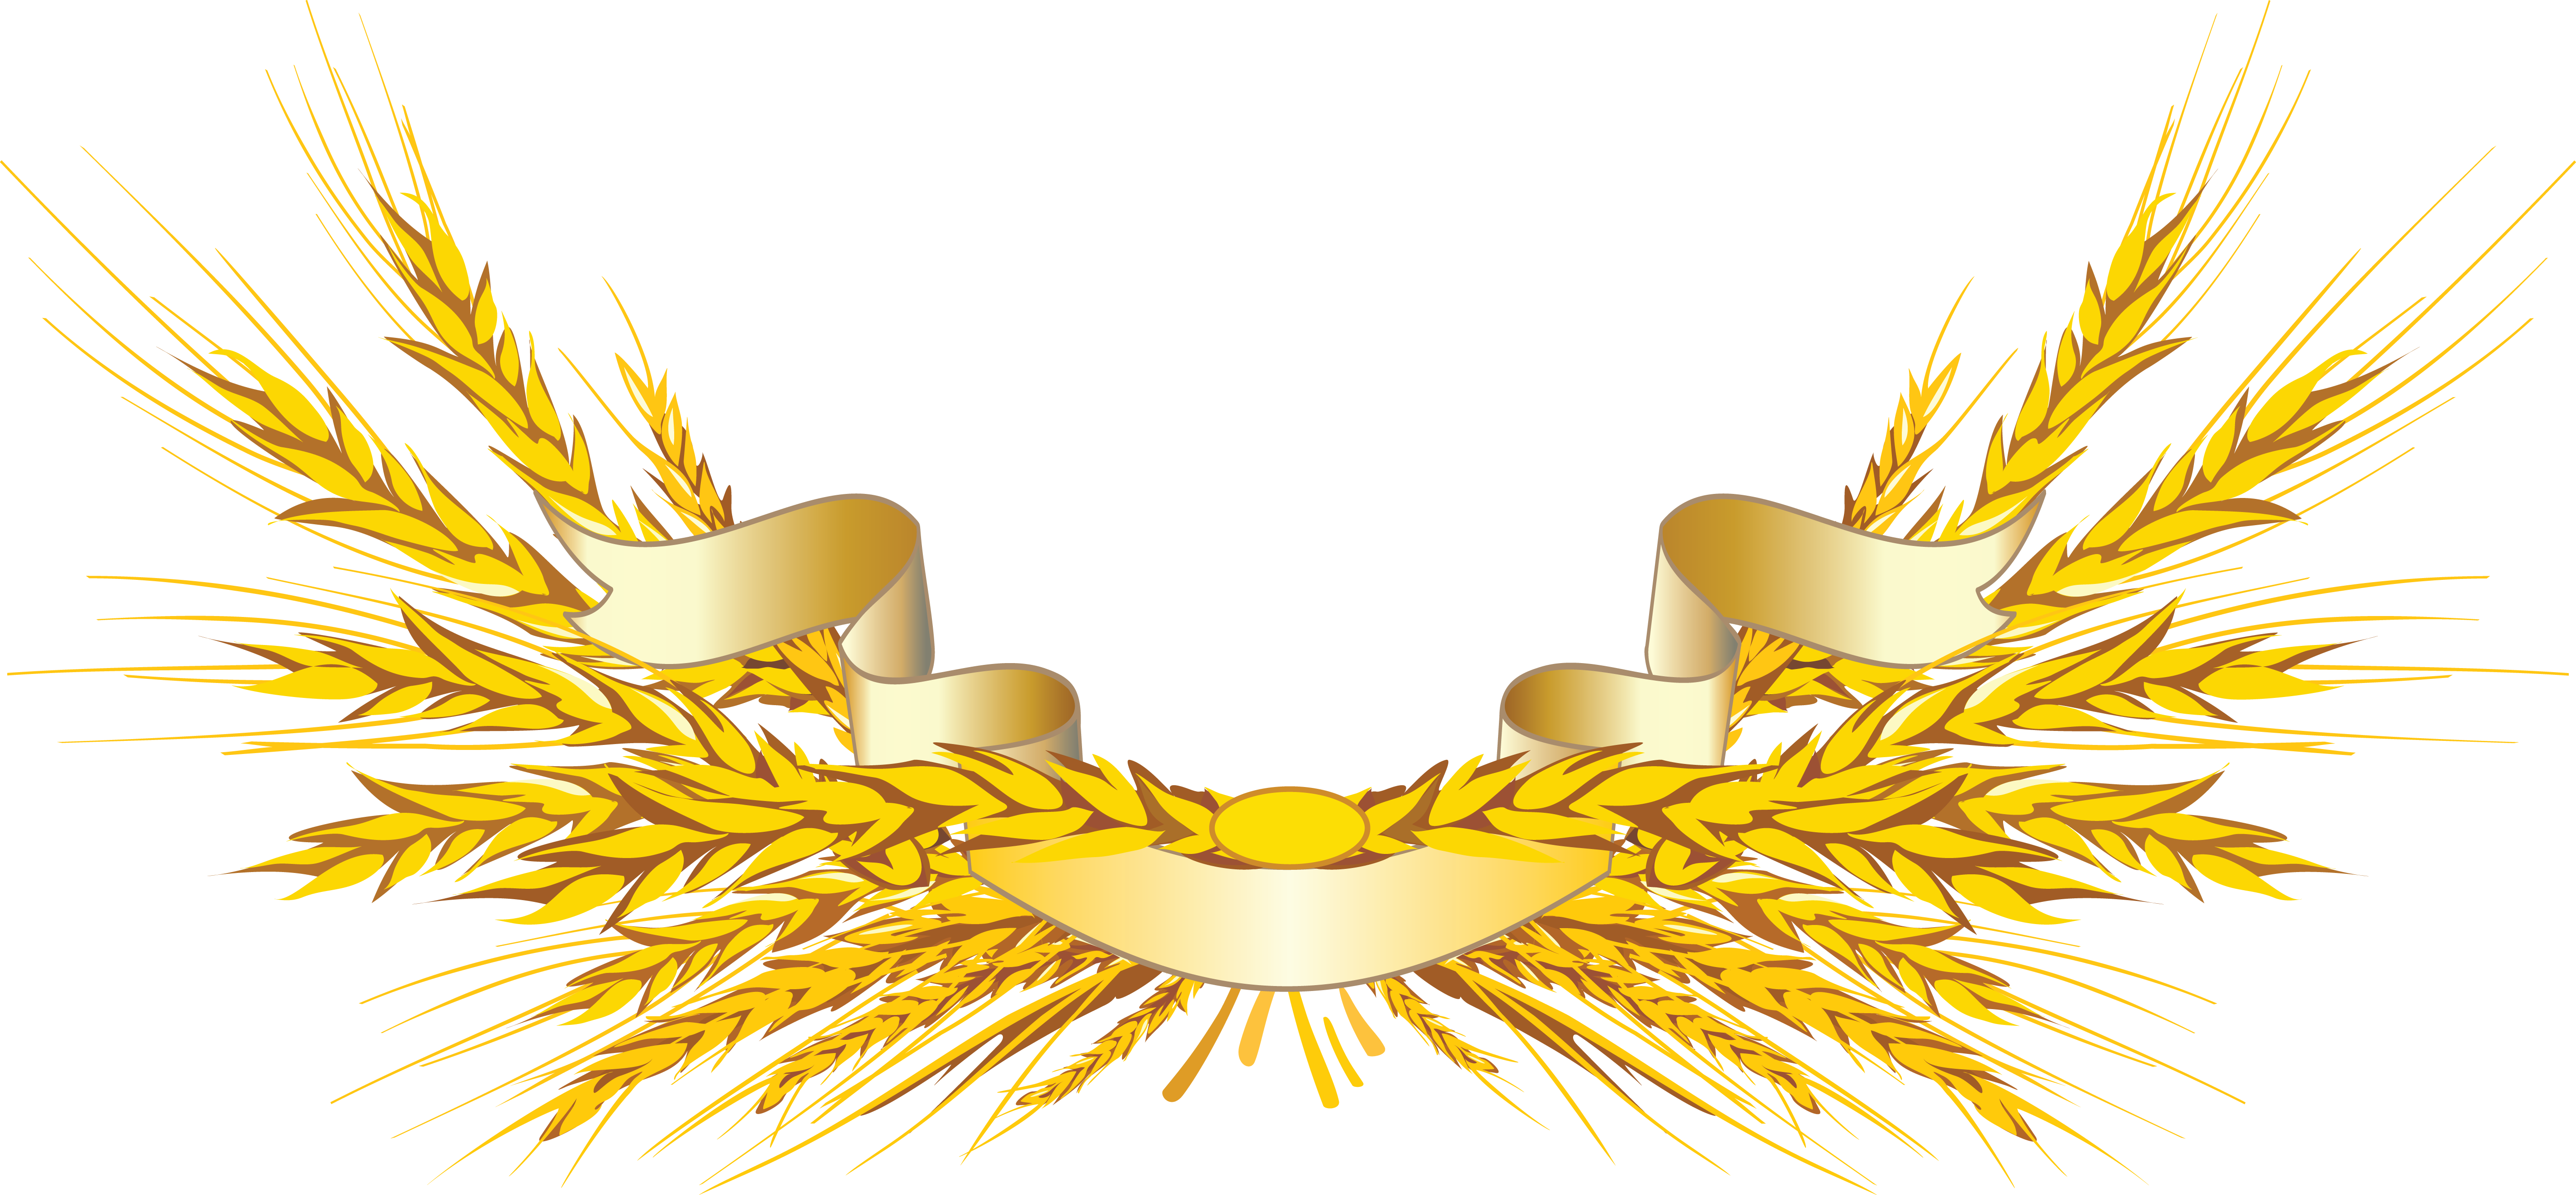 clip royalty free Wheat png image purepng. Grain clipart transparent